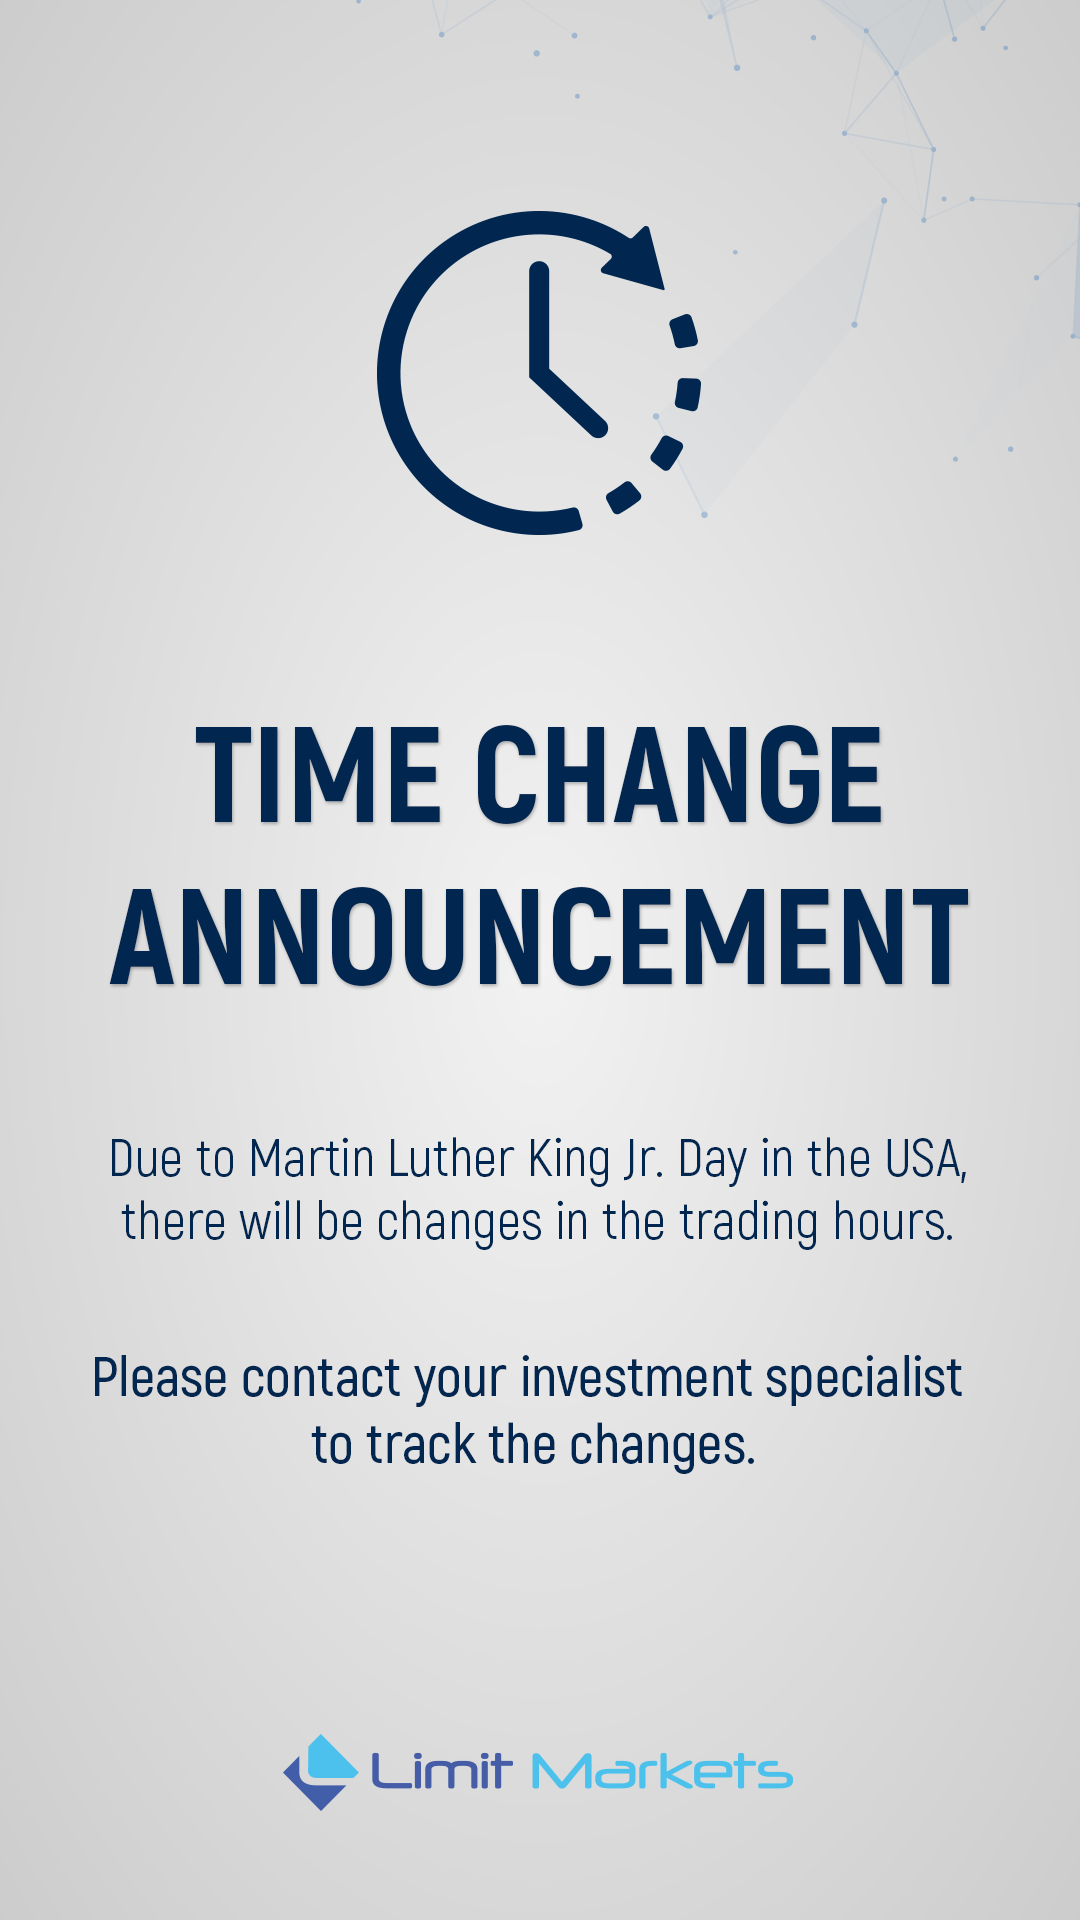 Time Change Announcement